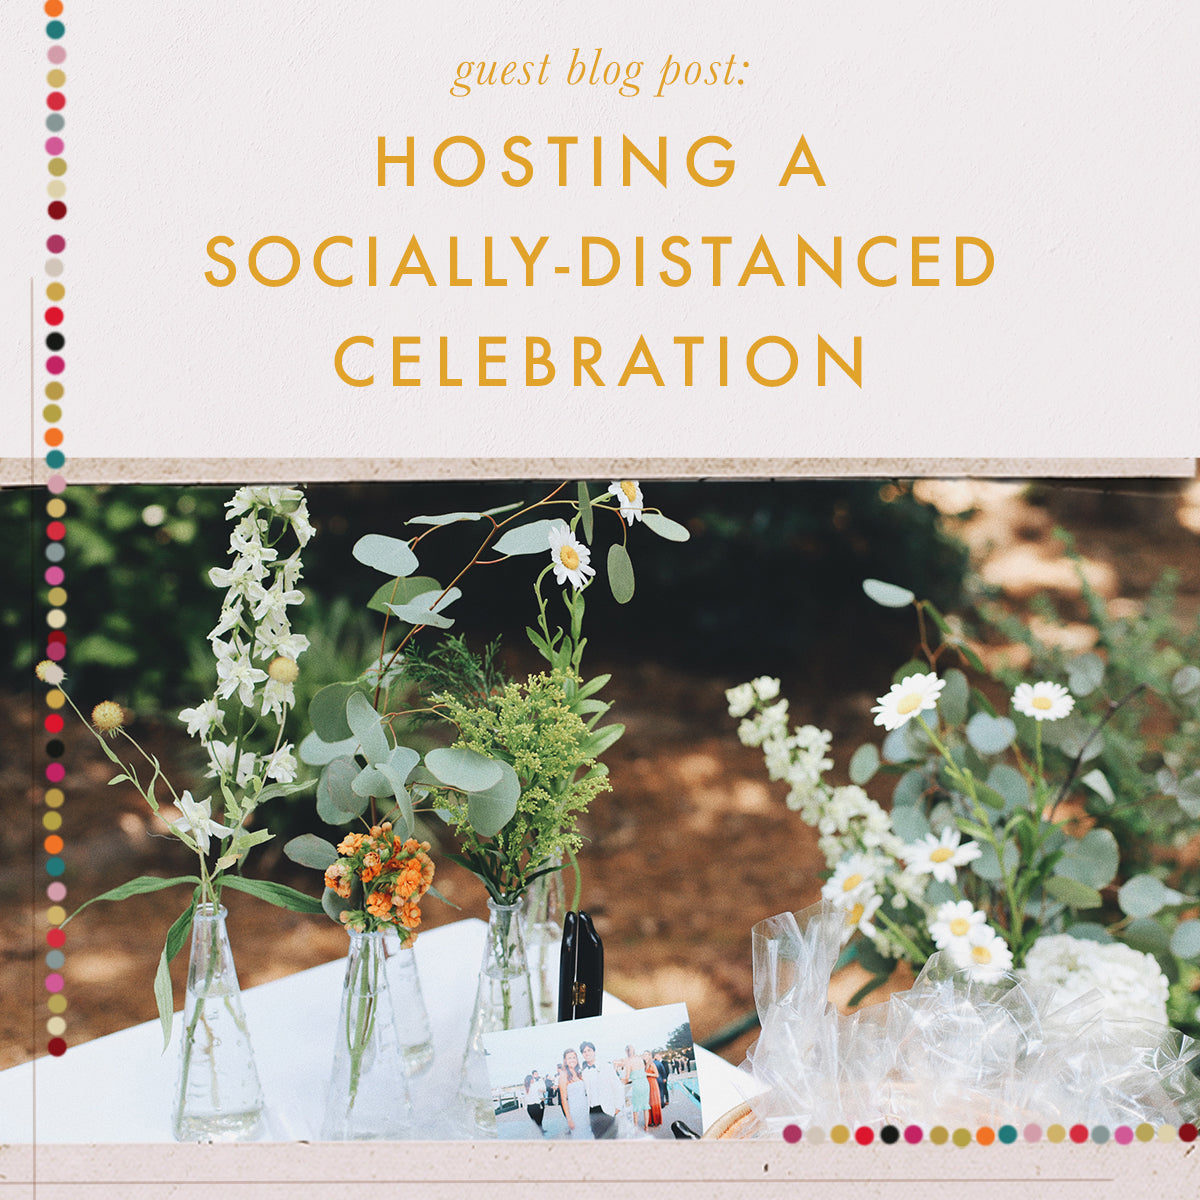 Hosting a Socially-Distanced Celebration